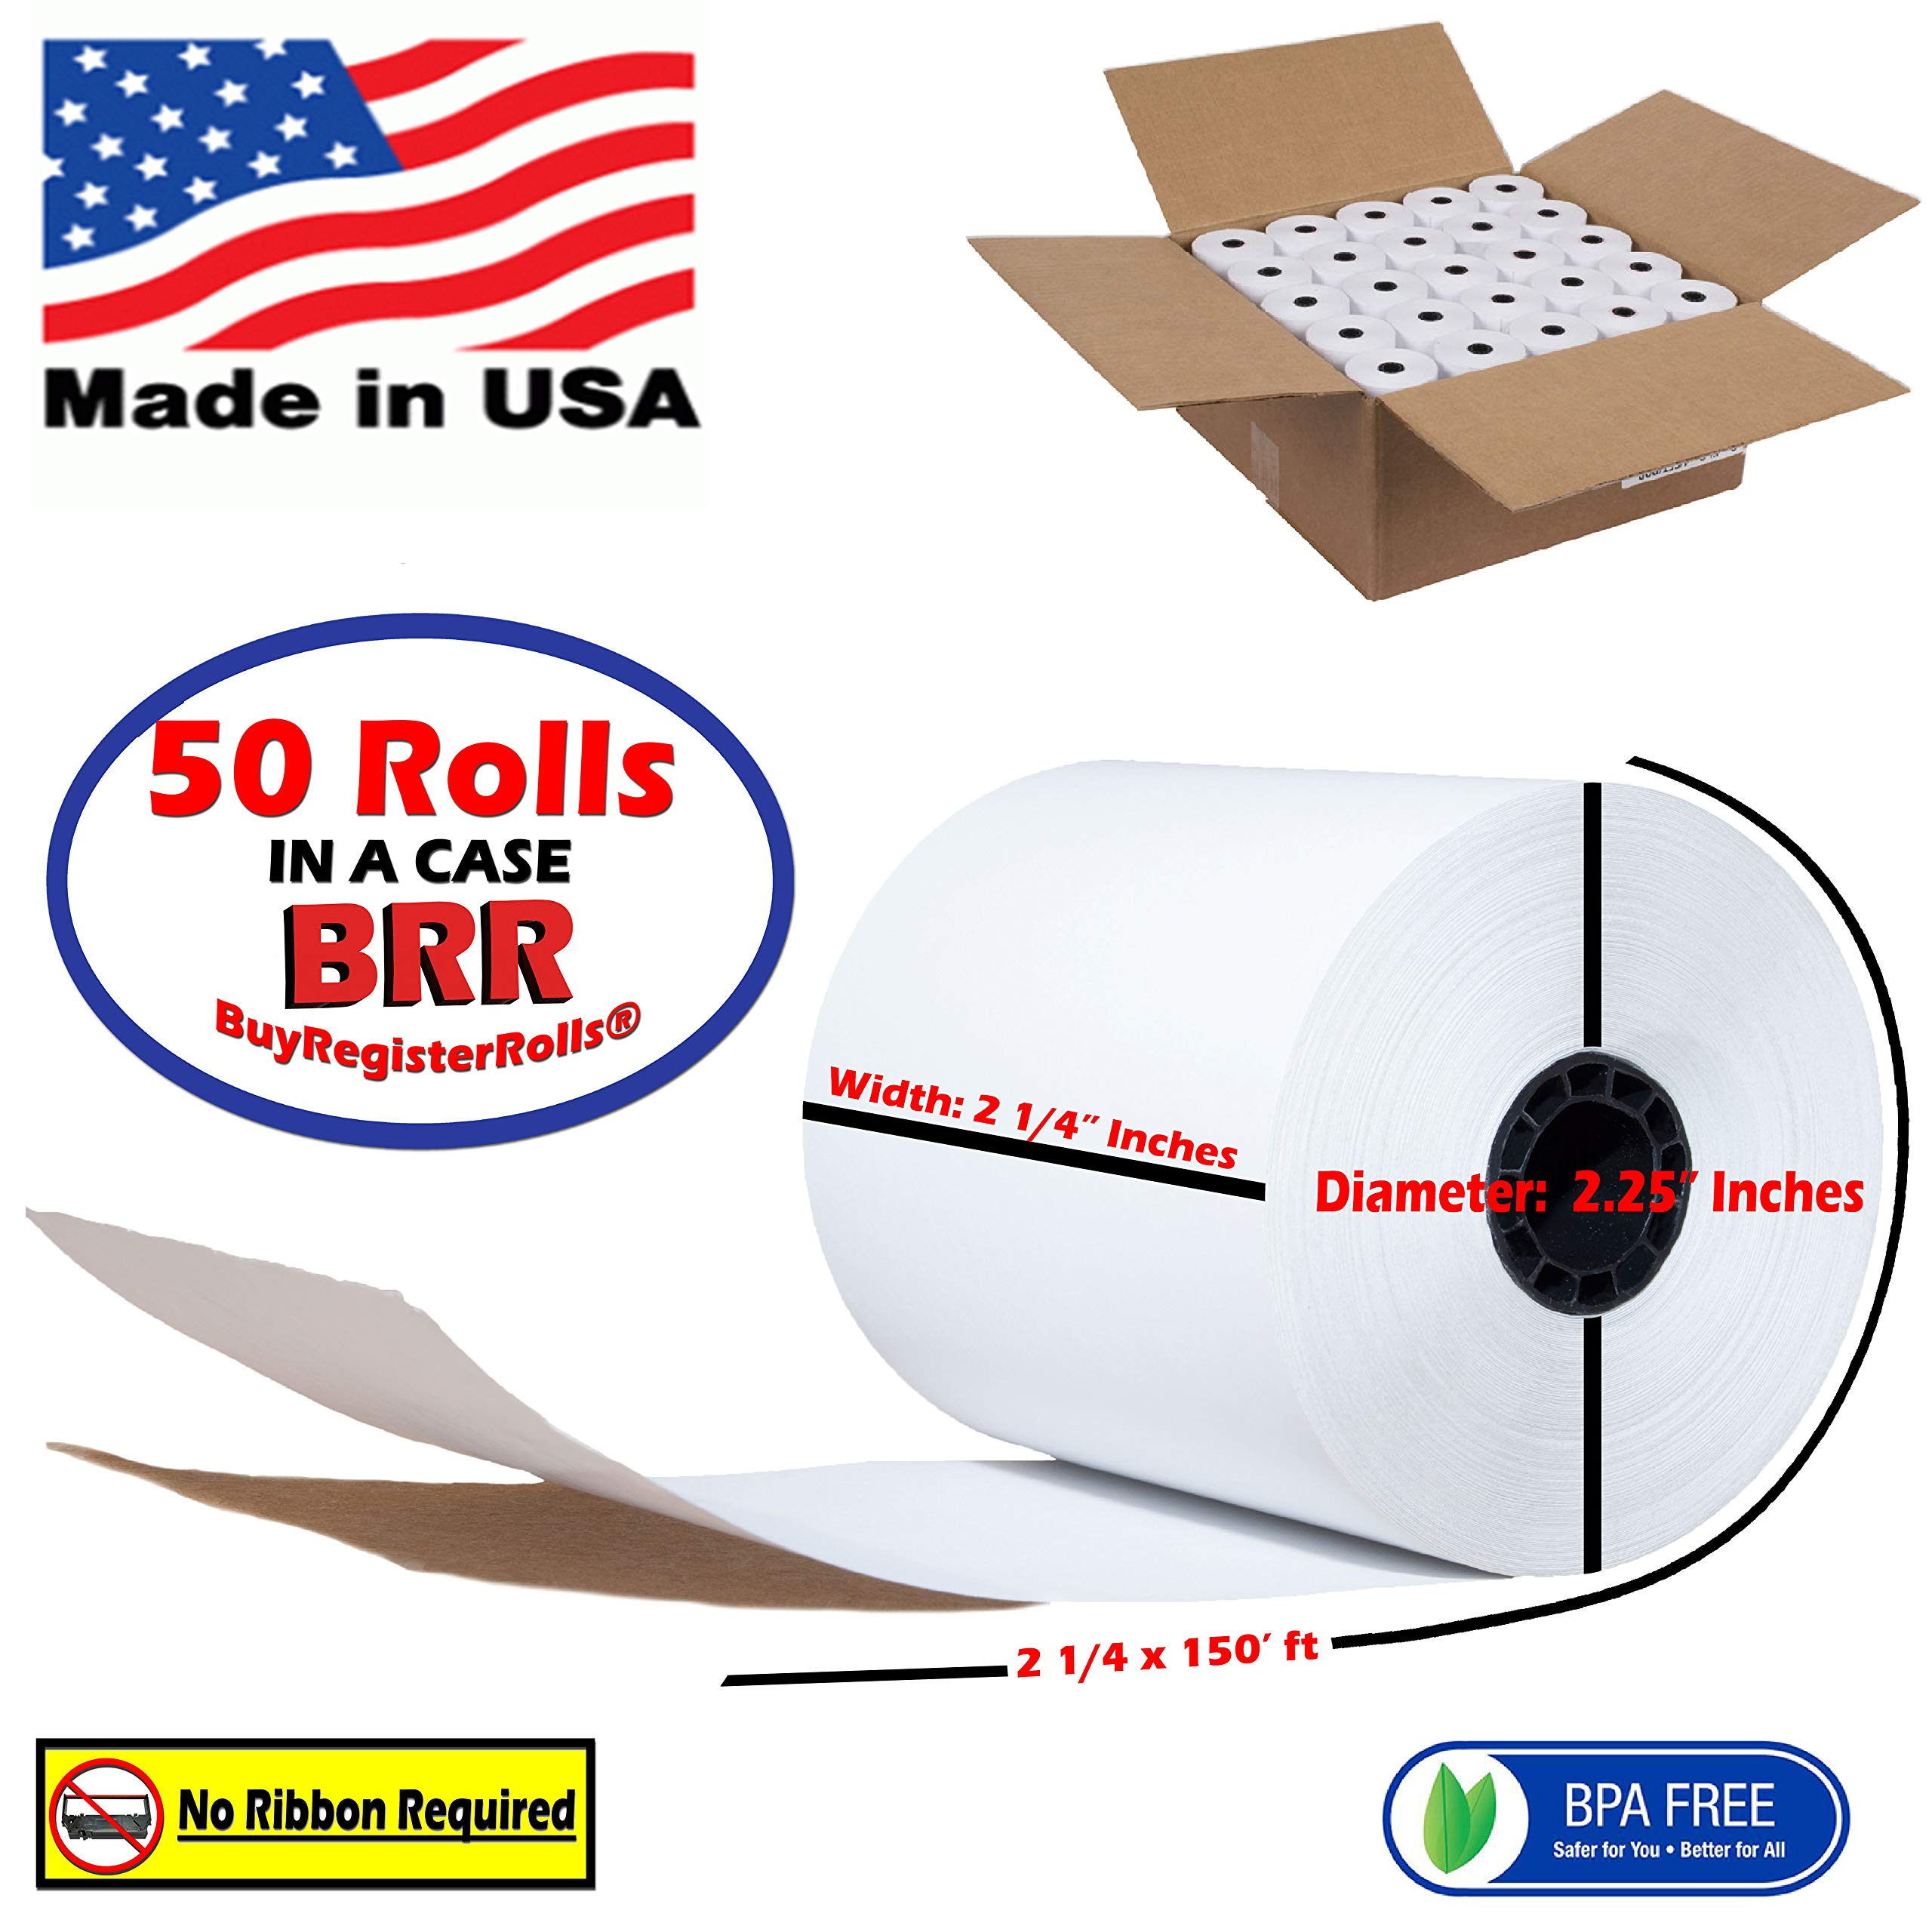 2 1/4 x 150 Thermal Paper Rolls 50 Rolls | Value Pack | Premium Quality BPA Free - Thermal Paper Rolls - from BuyRegisterRolls